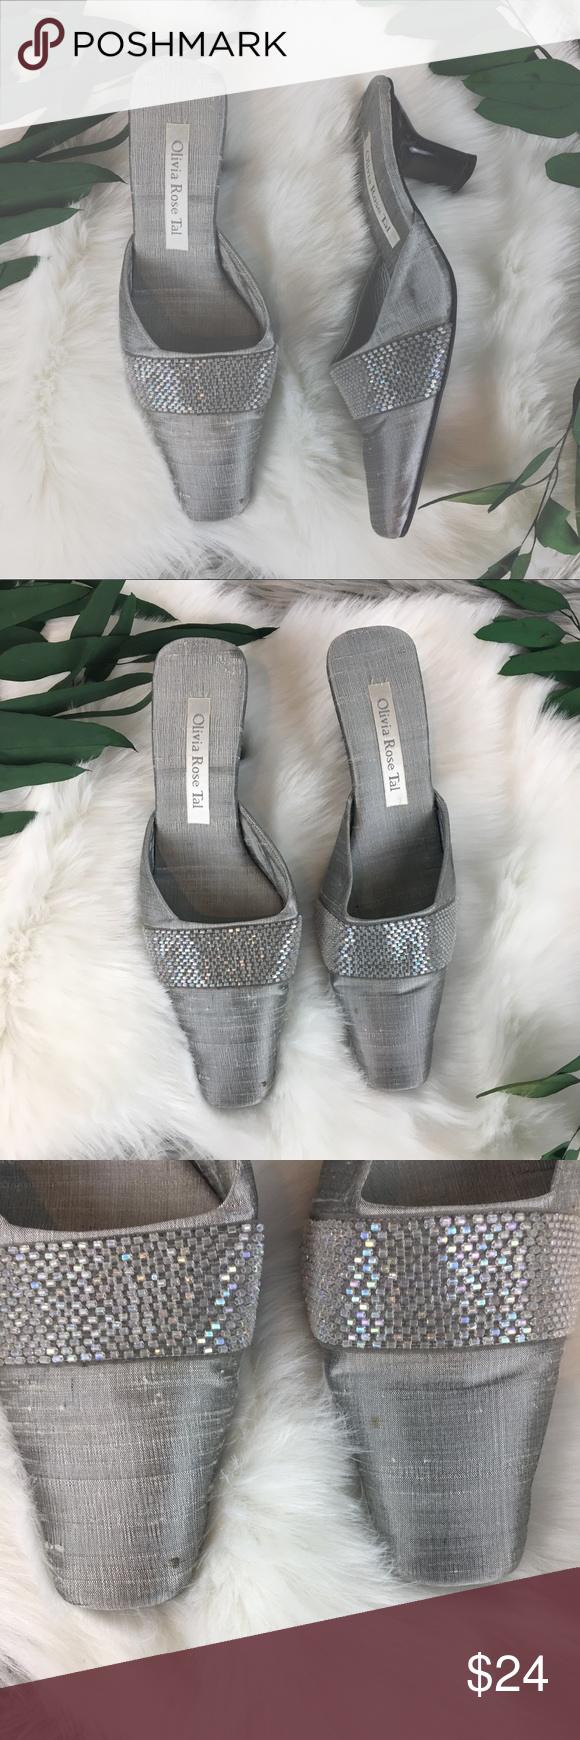 8033e41b0555 Olivia Rose Tal Silver Silk Mules size 7 Olivia Rose Tal Gray Silk Mules  with iridescent beading. Includes box. Size 7 Any imperfections are  pictured.